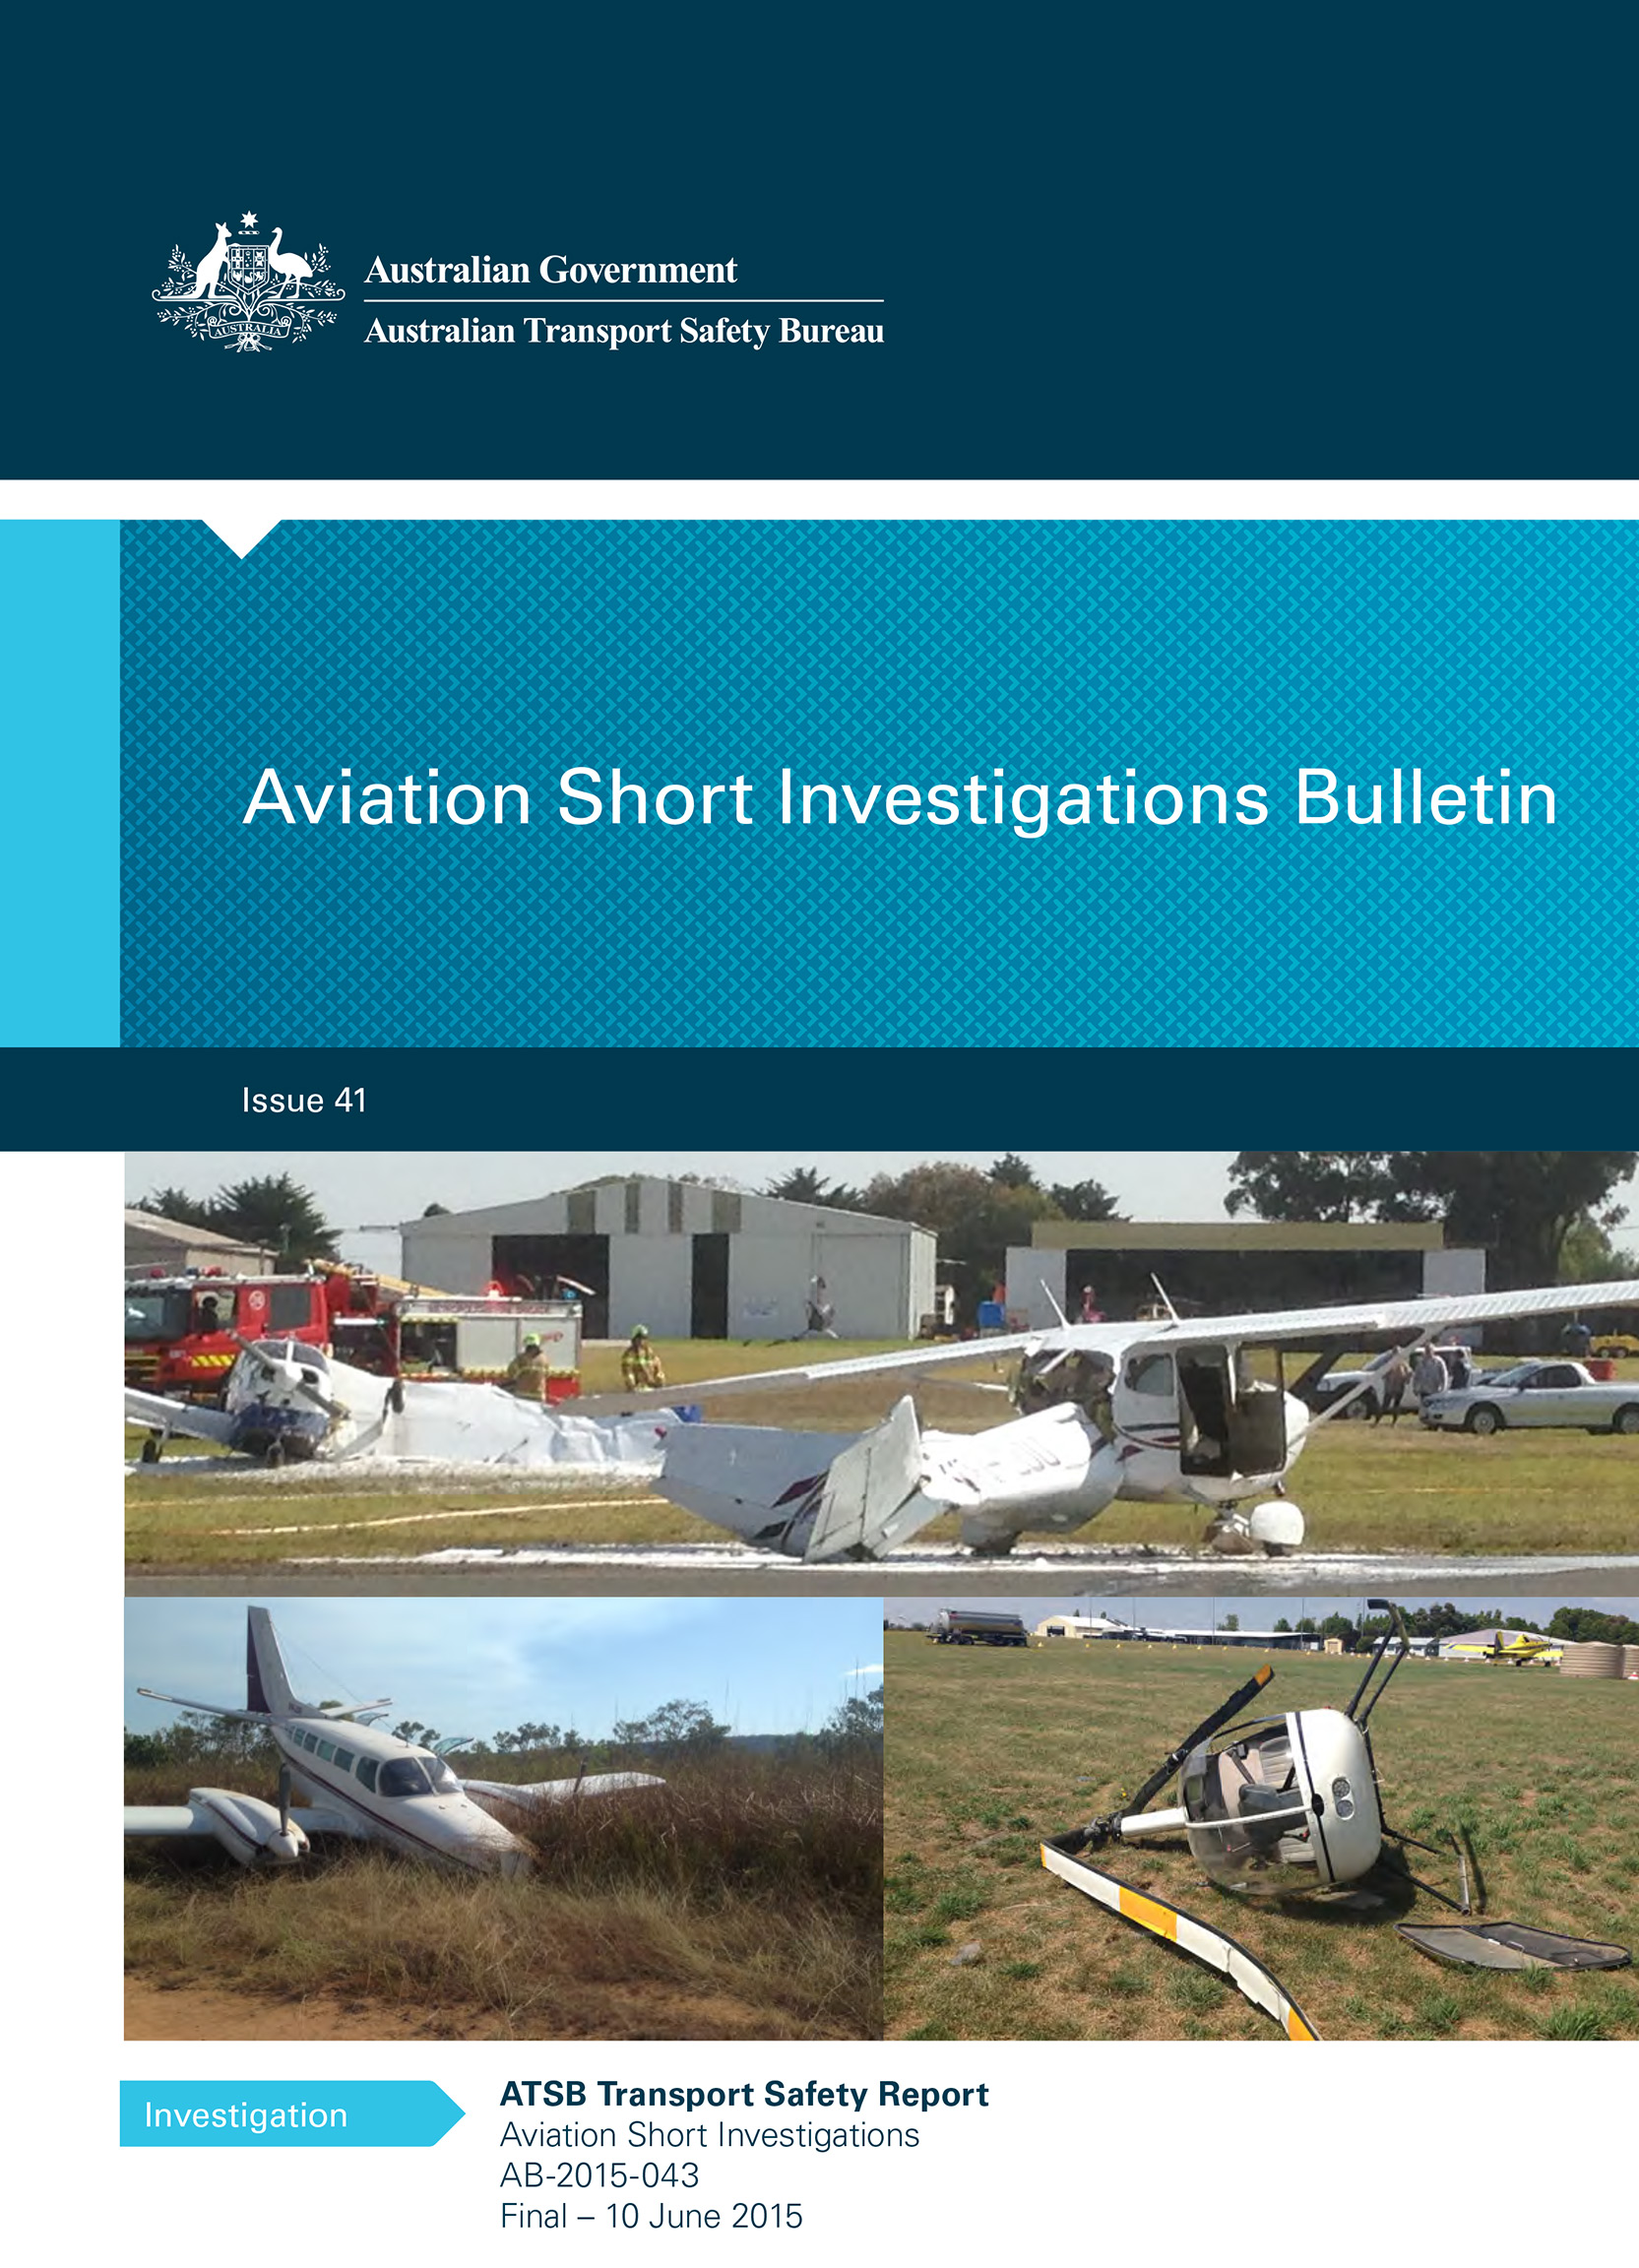 Download complete document - Aviation Short Investigations Bulletin - Issue 41